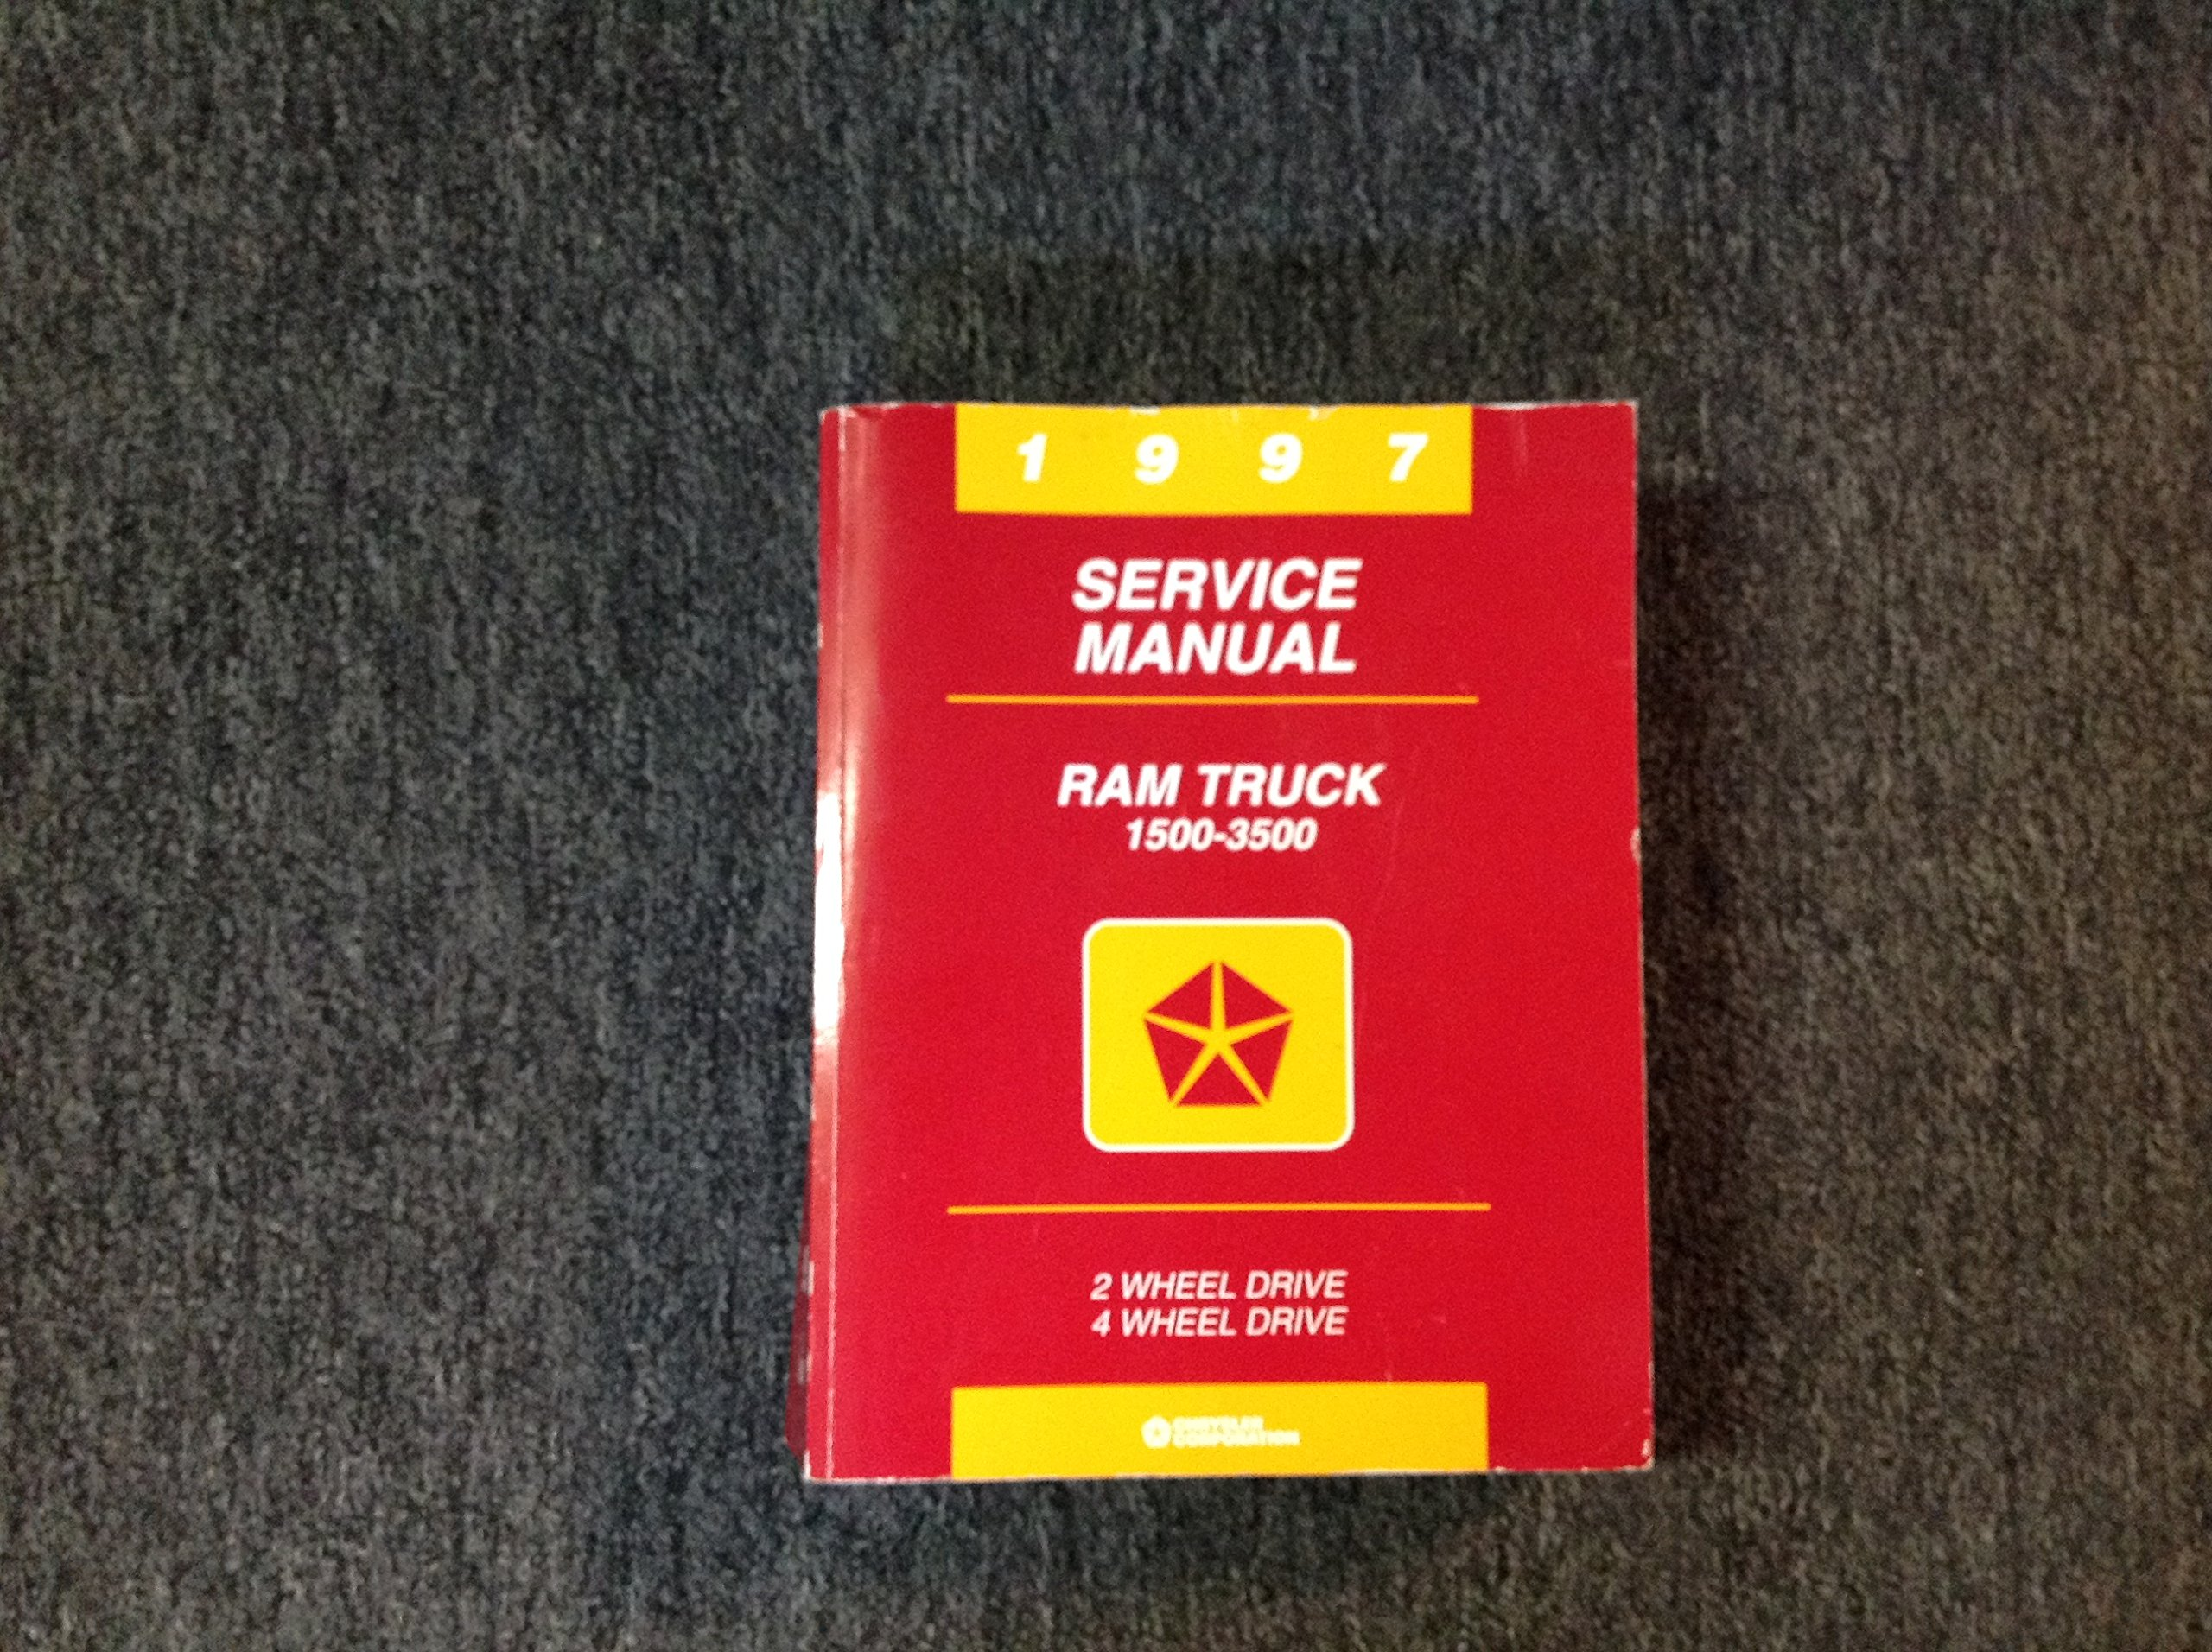 1997 Dodge Ram Truck Repair Shop Manual Original 1500-2500-3500: Dodge:  Amazon.com: Books